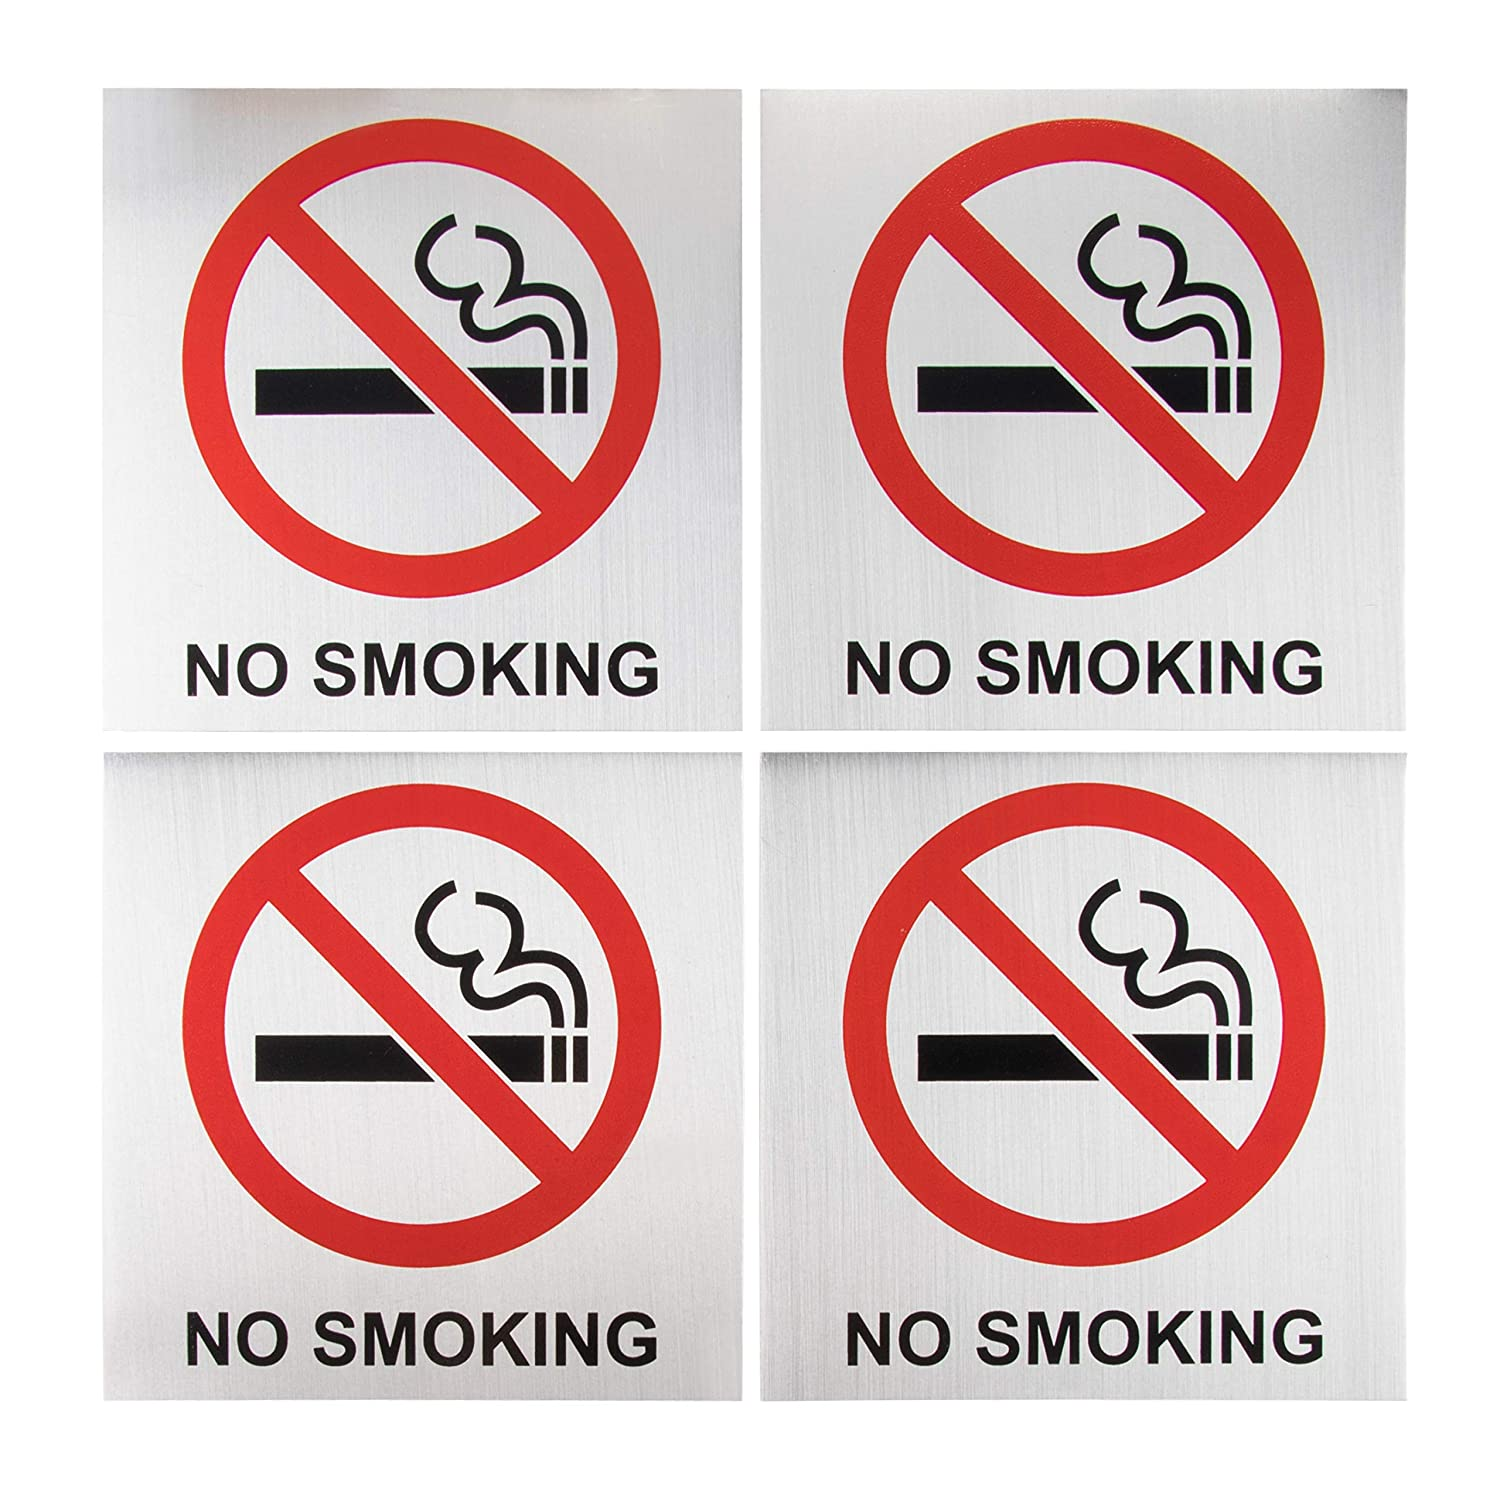 Coffee Shops 4-Pack Metal No Smoking Square Aluminum Signs Restaurants Ideal for Public Spaces 5.5 x 5.5 Inches Indoors and Outdoors Self-Adhesive No Smoking Signs